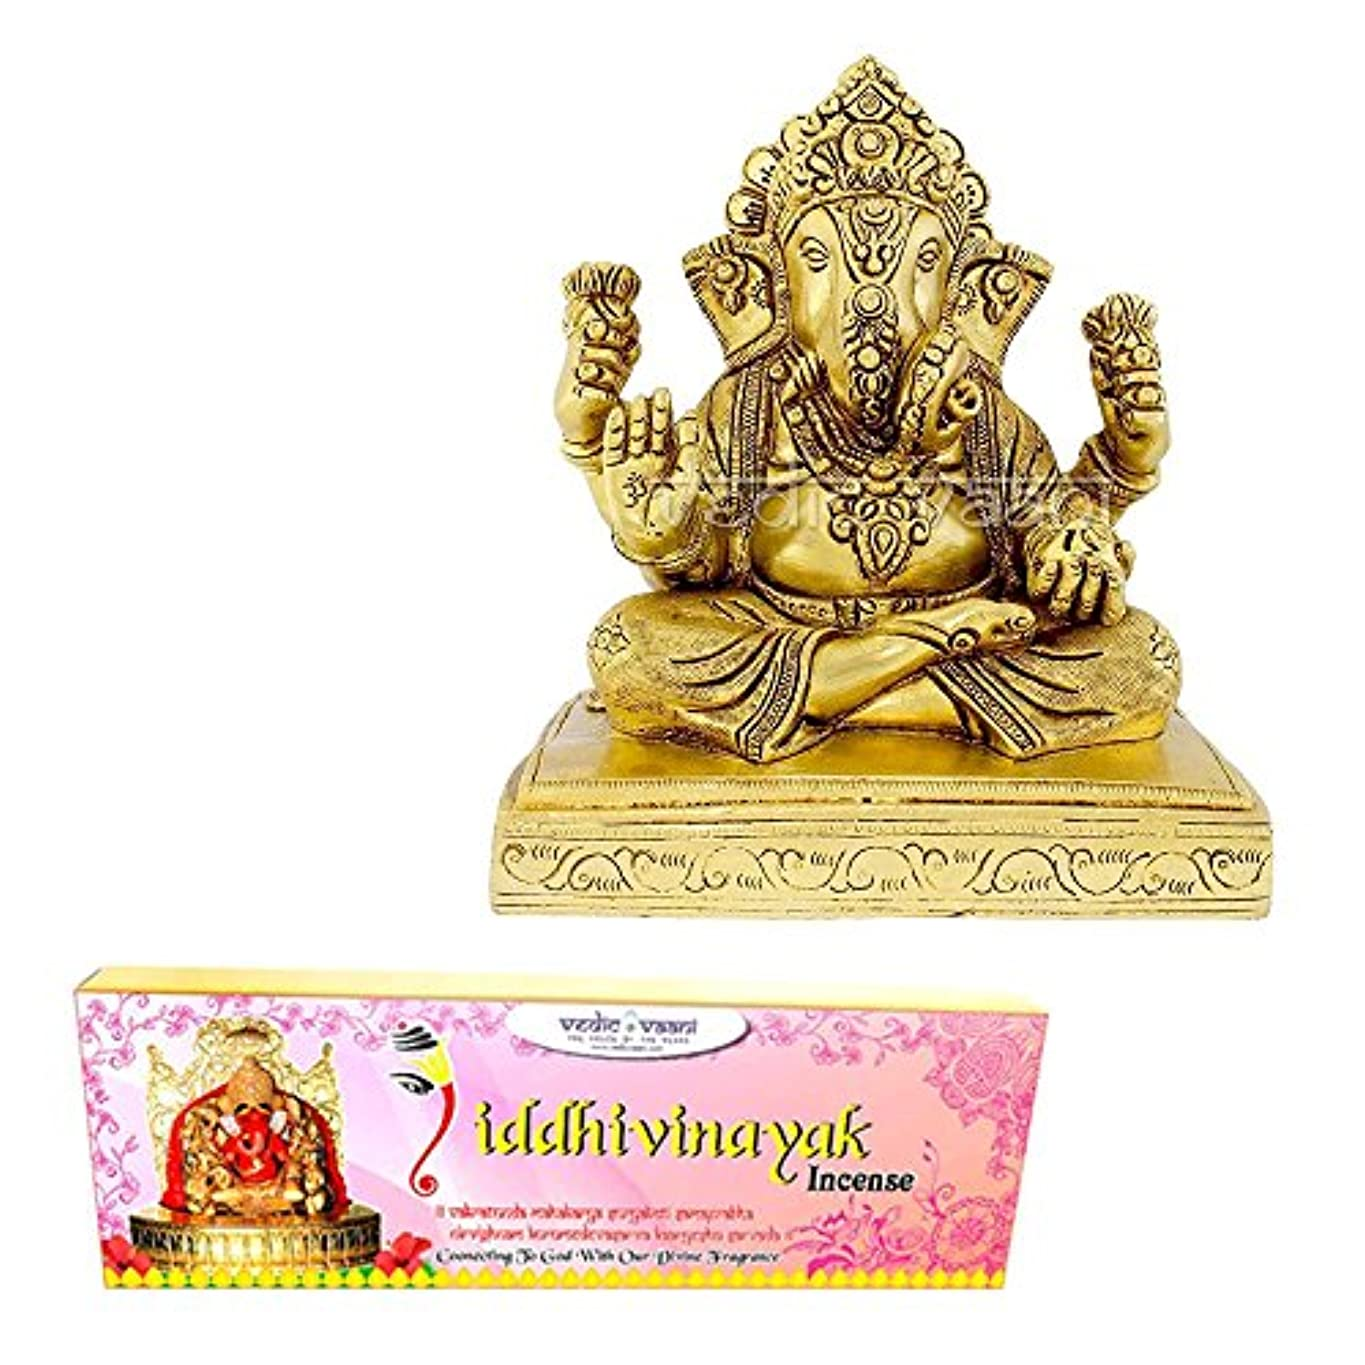 Vedic Vaani Dagadusheth Ganpati Bappa Fine Idol In Brass With Siddhi Vinayak Incense